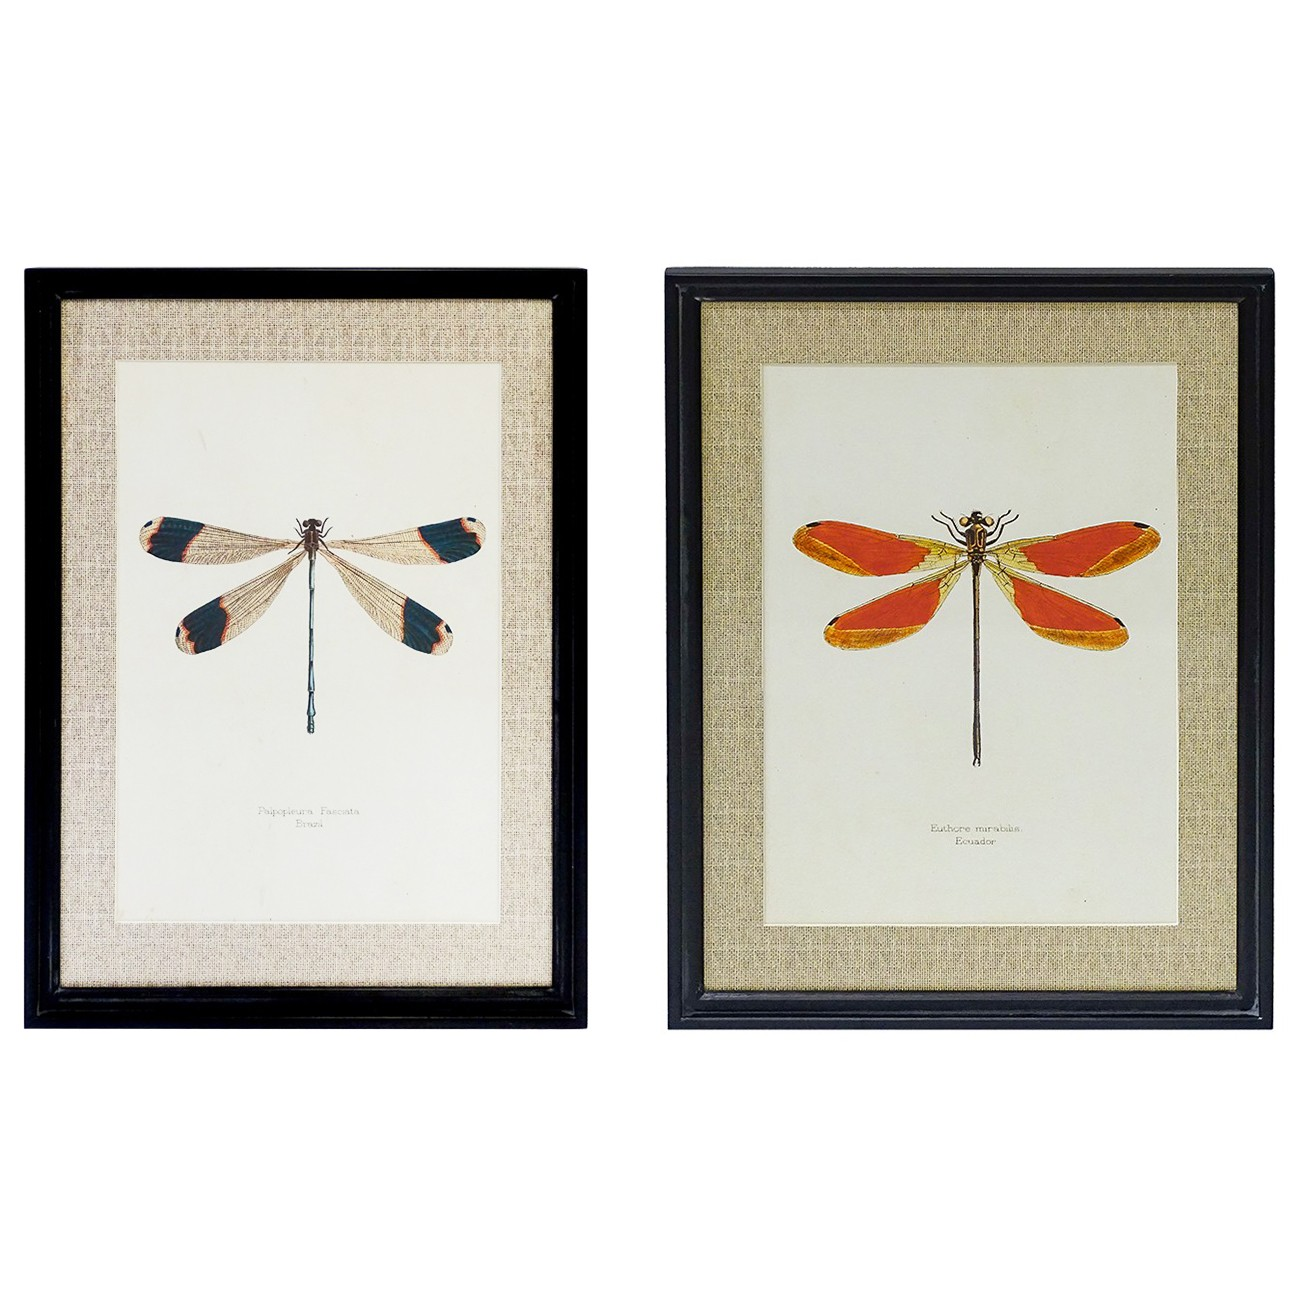 Orby 2 Piece Timber Framed Wall Art Print Set, Dragonflies, 70cm